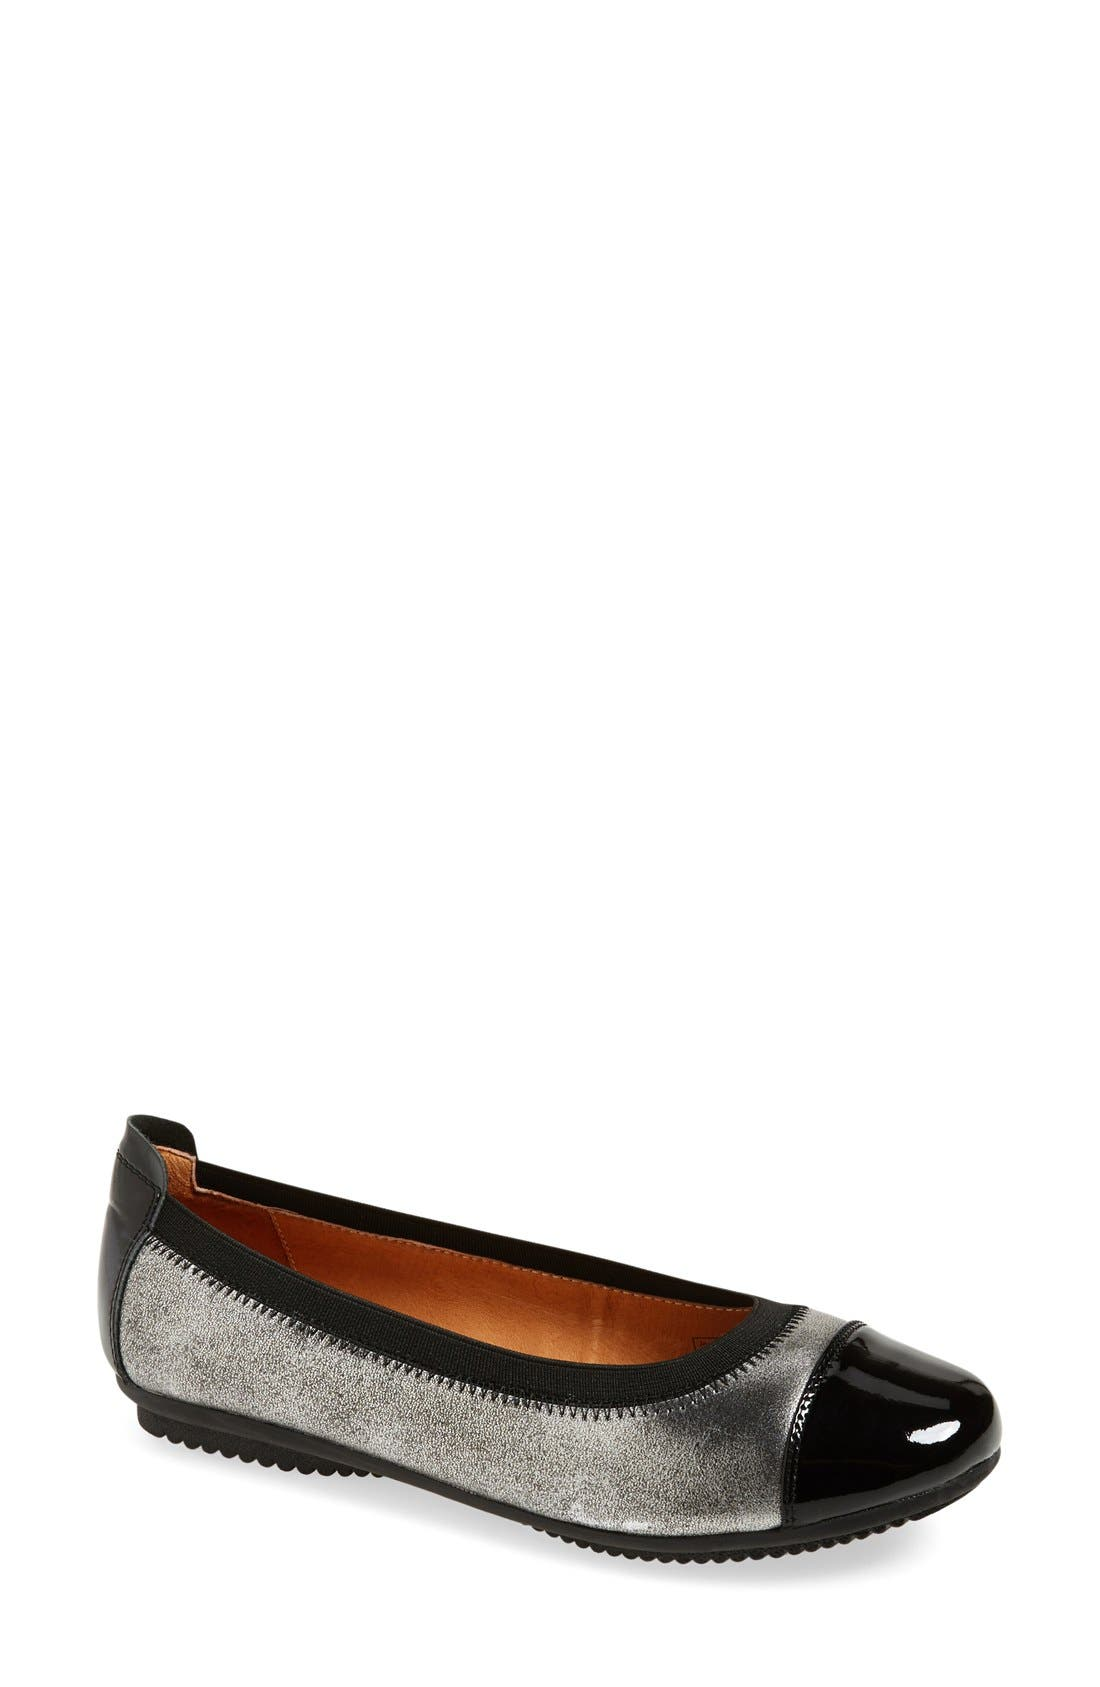 Pippa 07 Flat,                             Main thumbnail 1, color,                             Basalt Leather